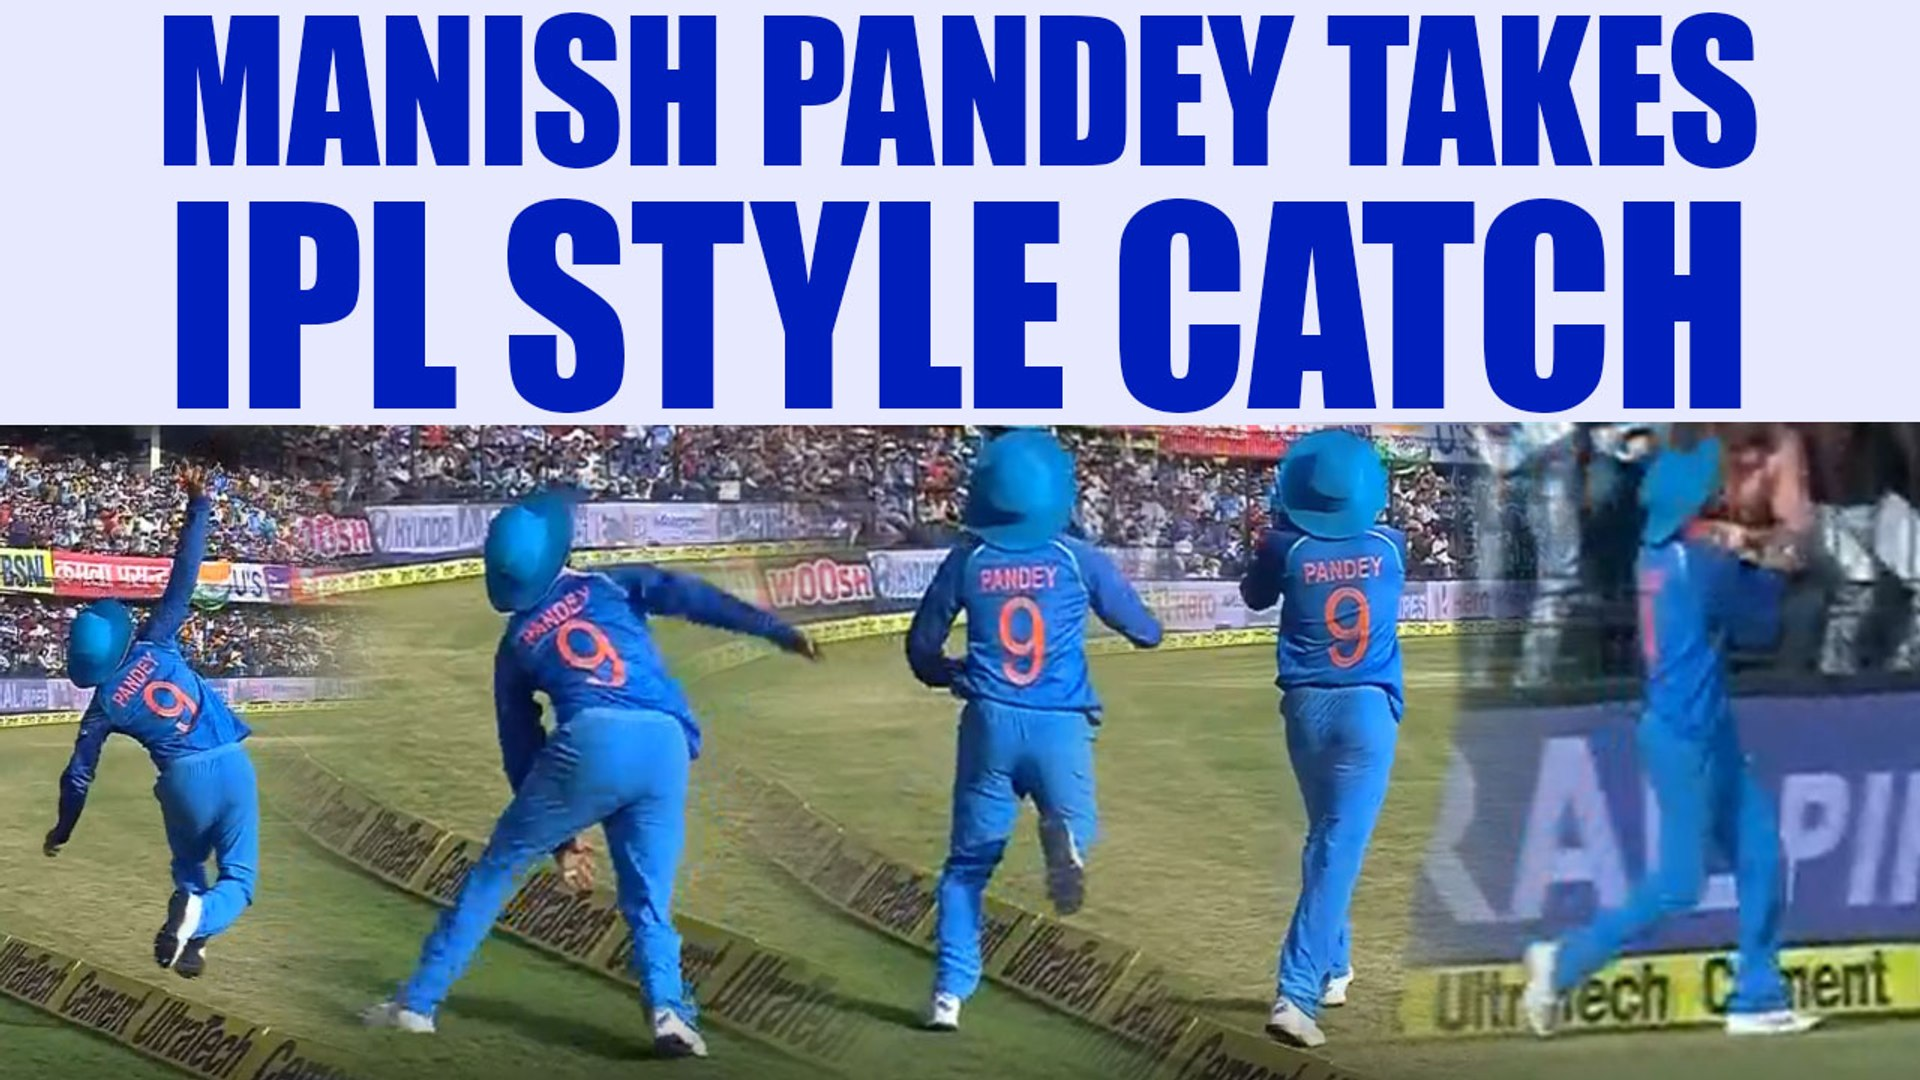 India vs Australia 3rd ODI: Maish Pandey takes 'IPL style' catch to dismiss Handscomb |One